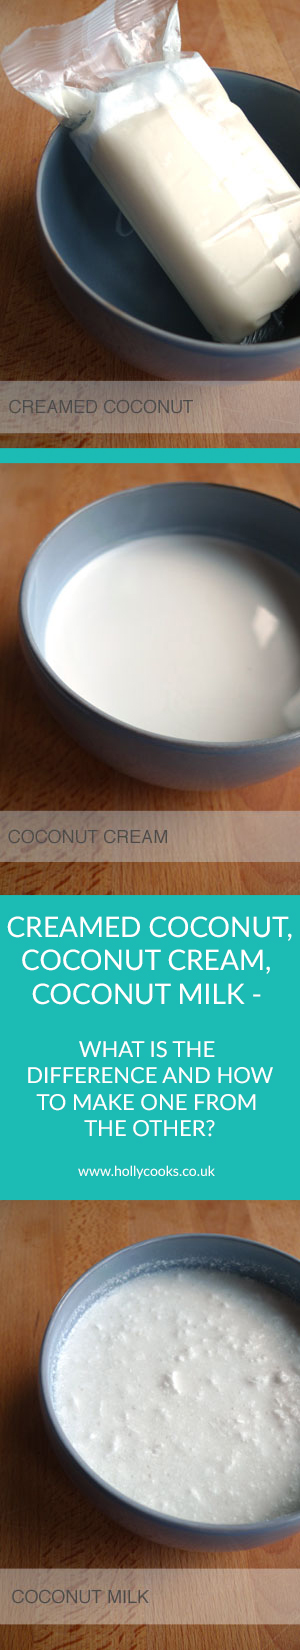 Holly-cooks-creamed-coconut-coconut-cream-and-coconut-milk-pinterest